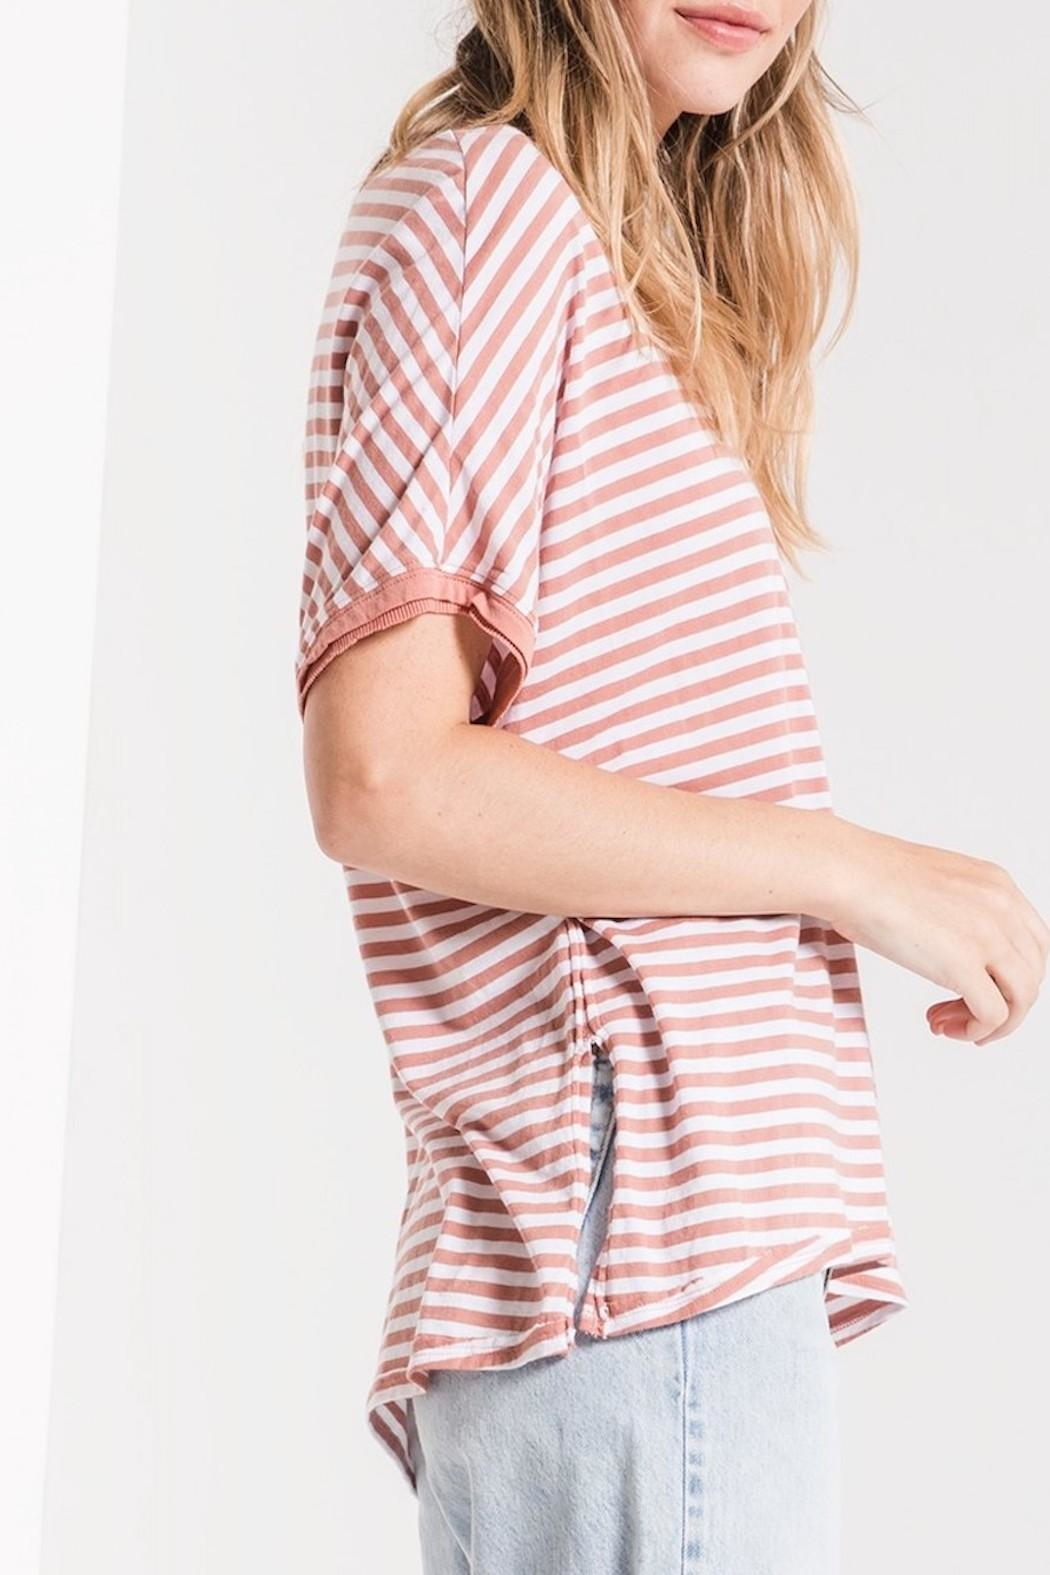 Apricot Lane St. Cloud Striped Bf-Tee-Rose - Front Full Image